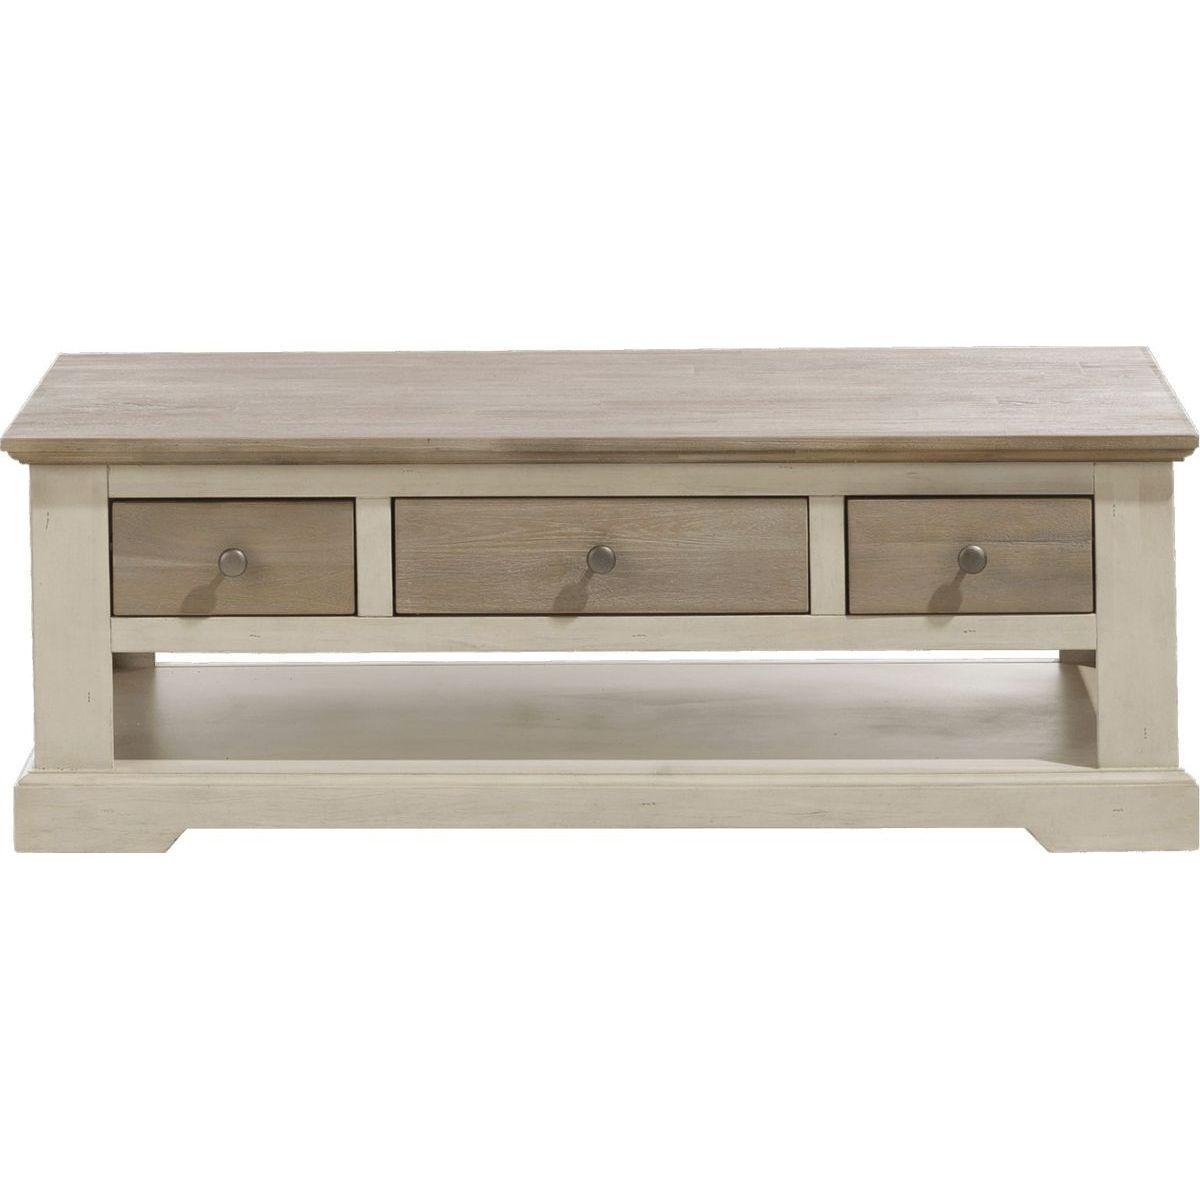 LE PORT by H&H Table basse